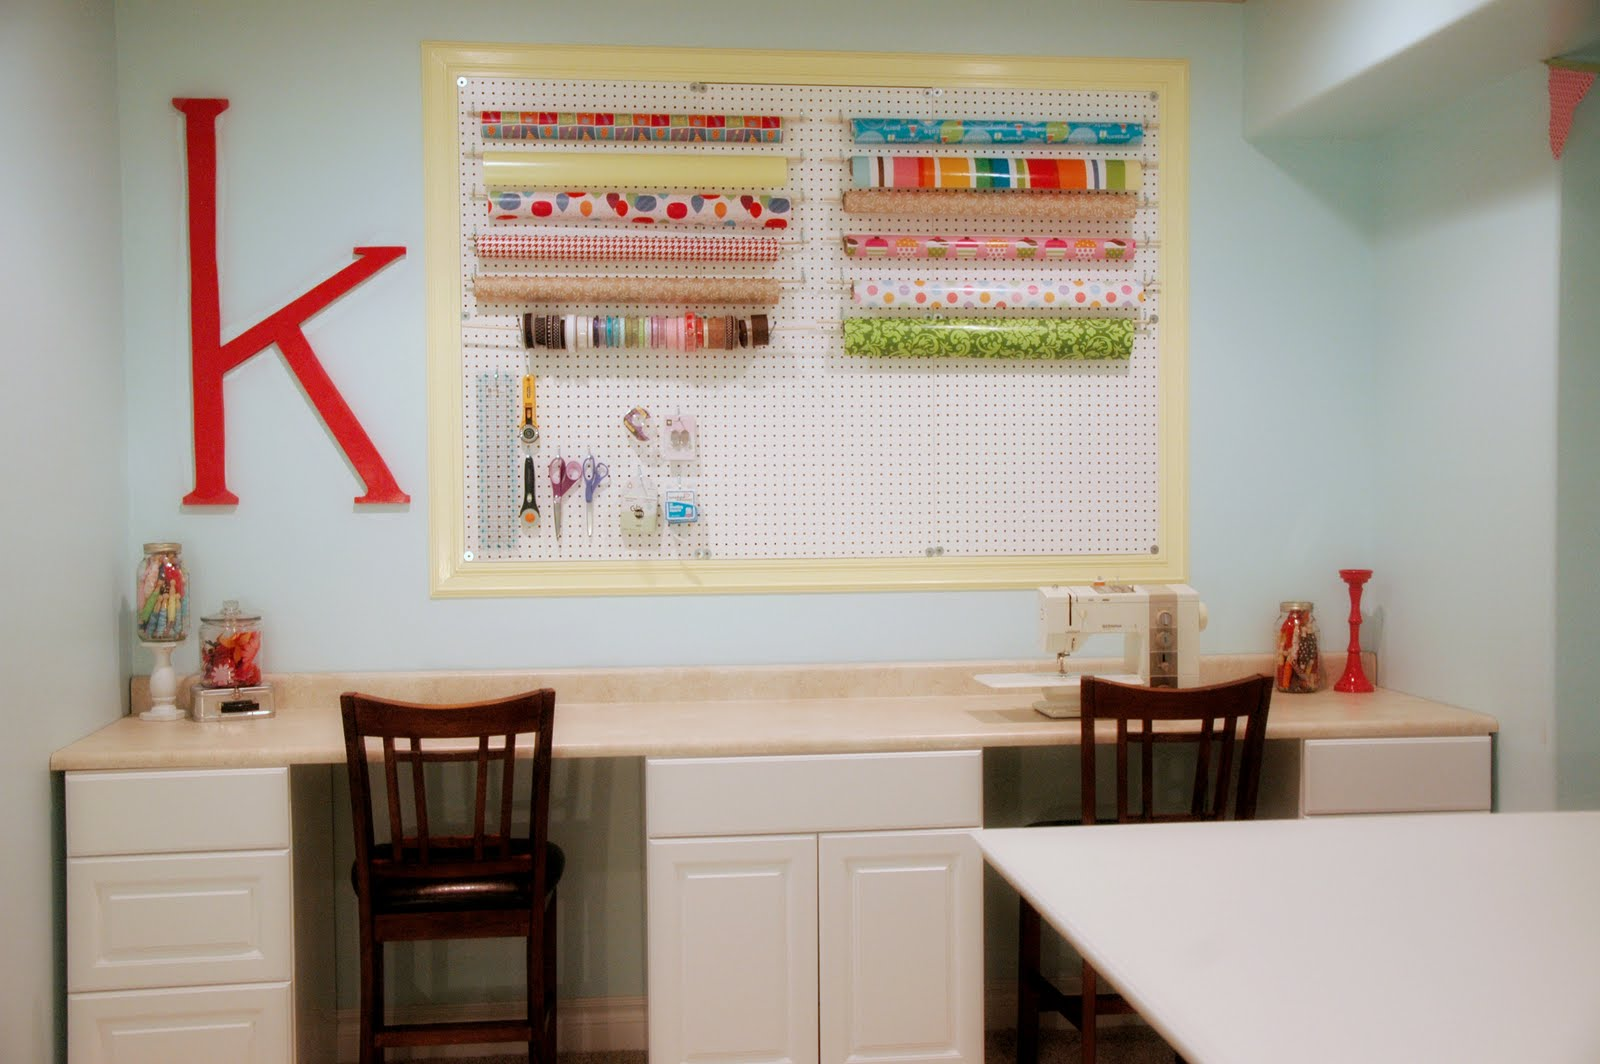 nannygoat: My Craft Room Reveal!